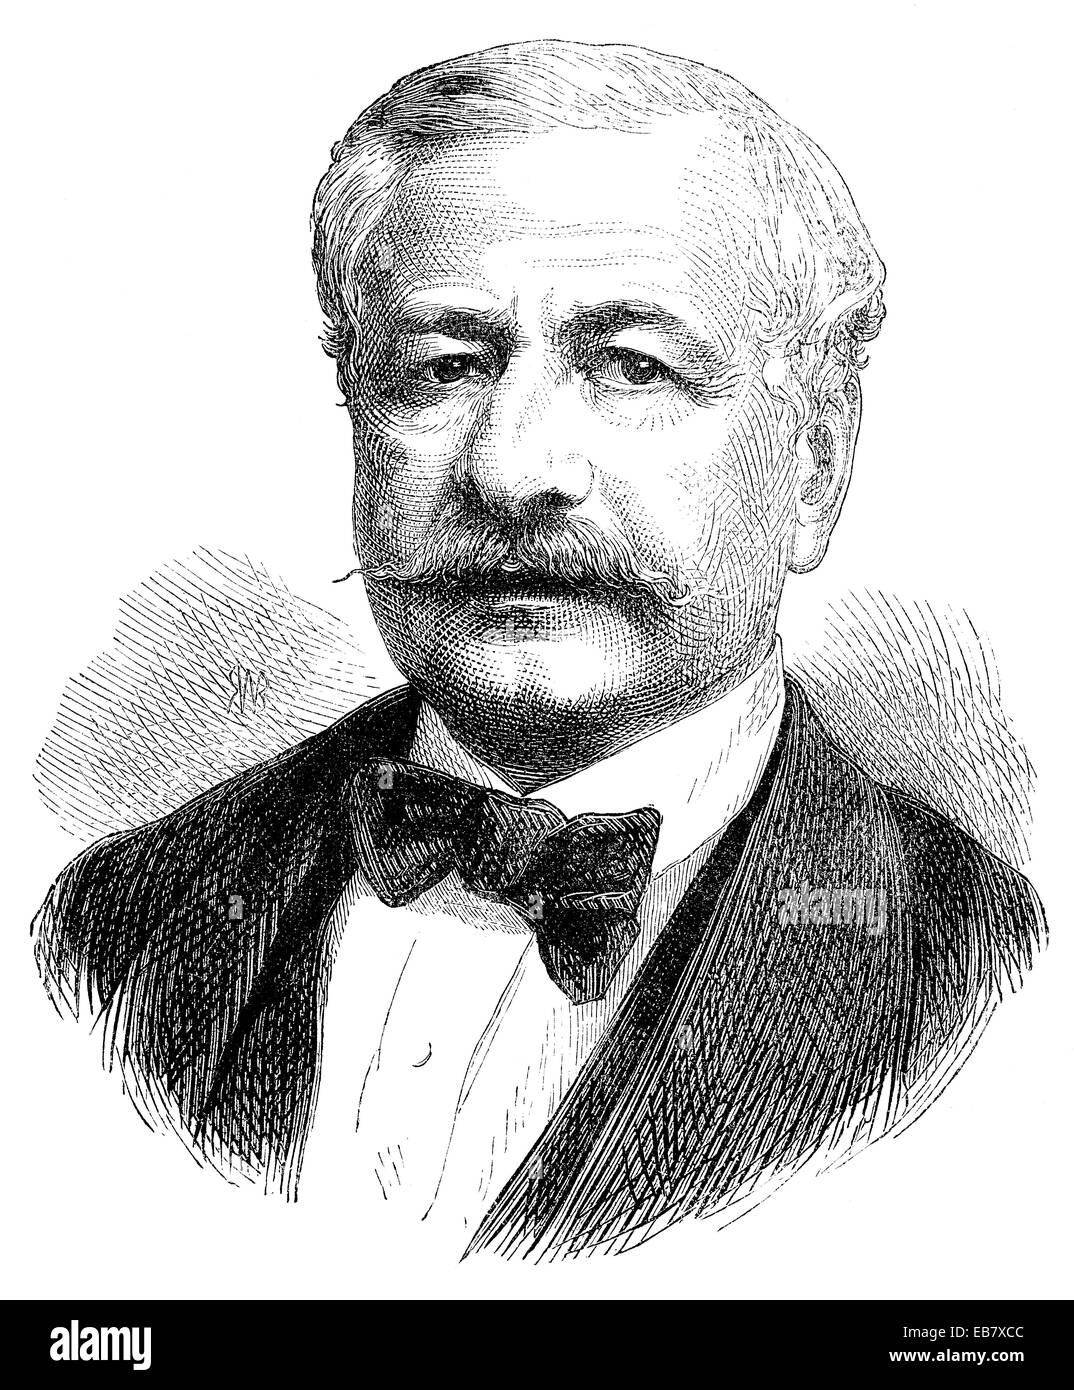 Ferdinand Marie Vicomte de Lesseps, 1805 - 1894, a French diplomat and initiator of the Suez Canal, Ferdinand Marie - Stock Image